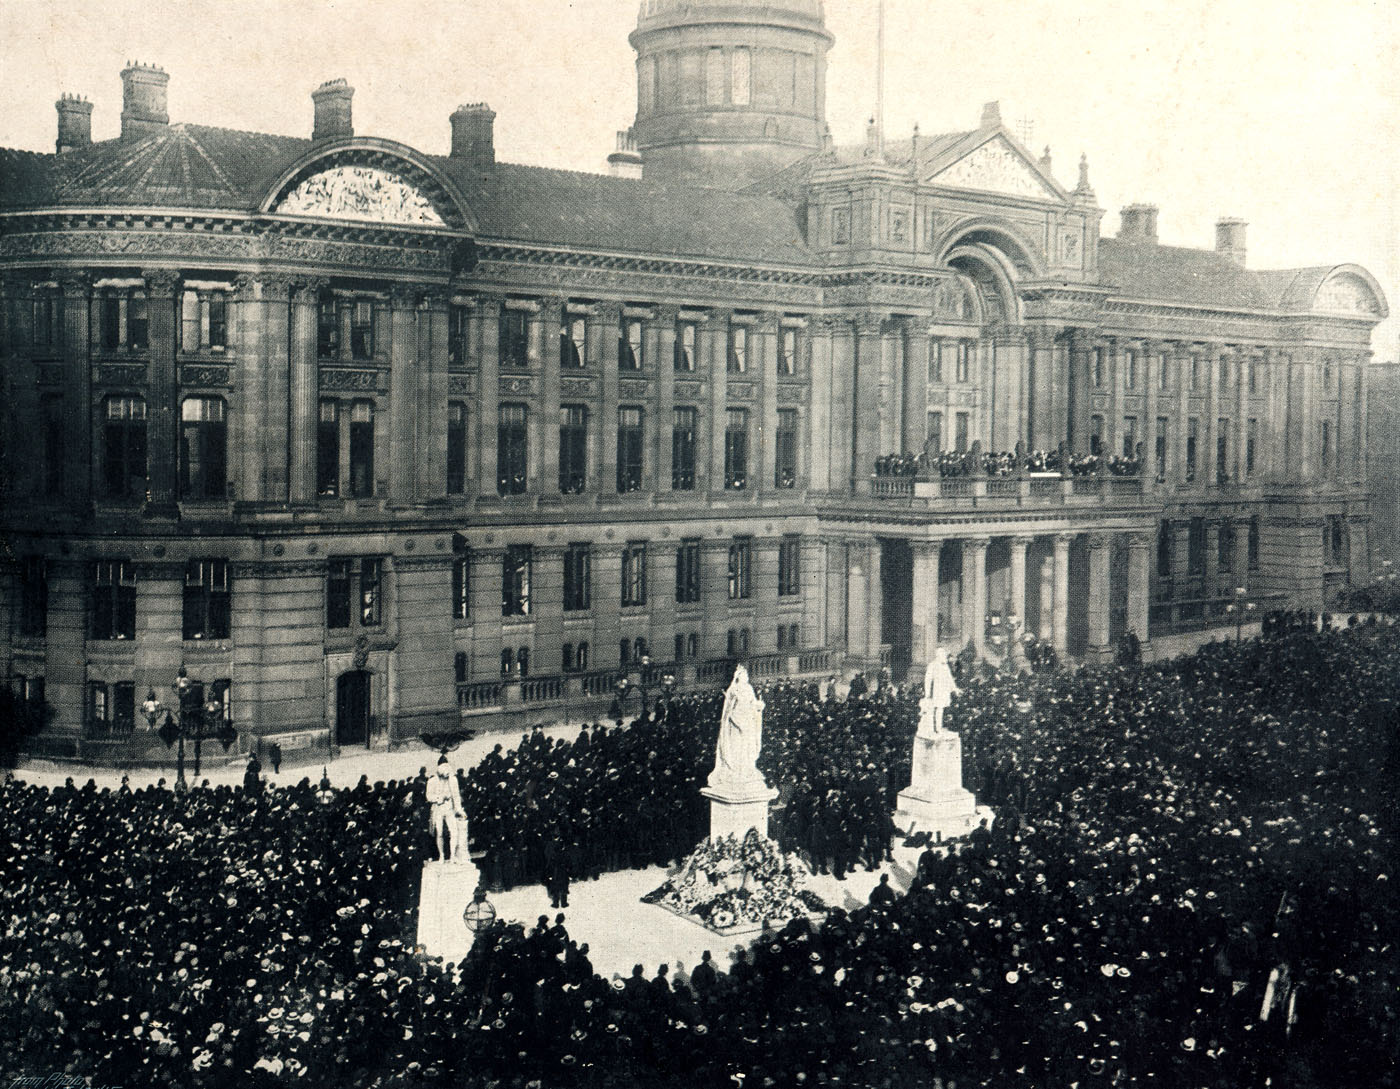 Proclaiming Edward V11 King Jan 25 1901